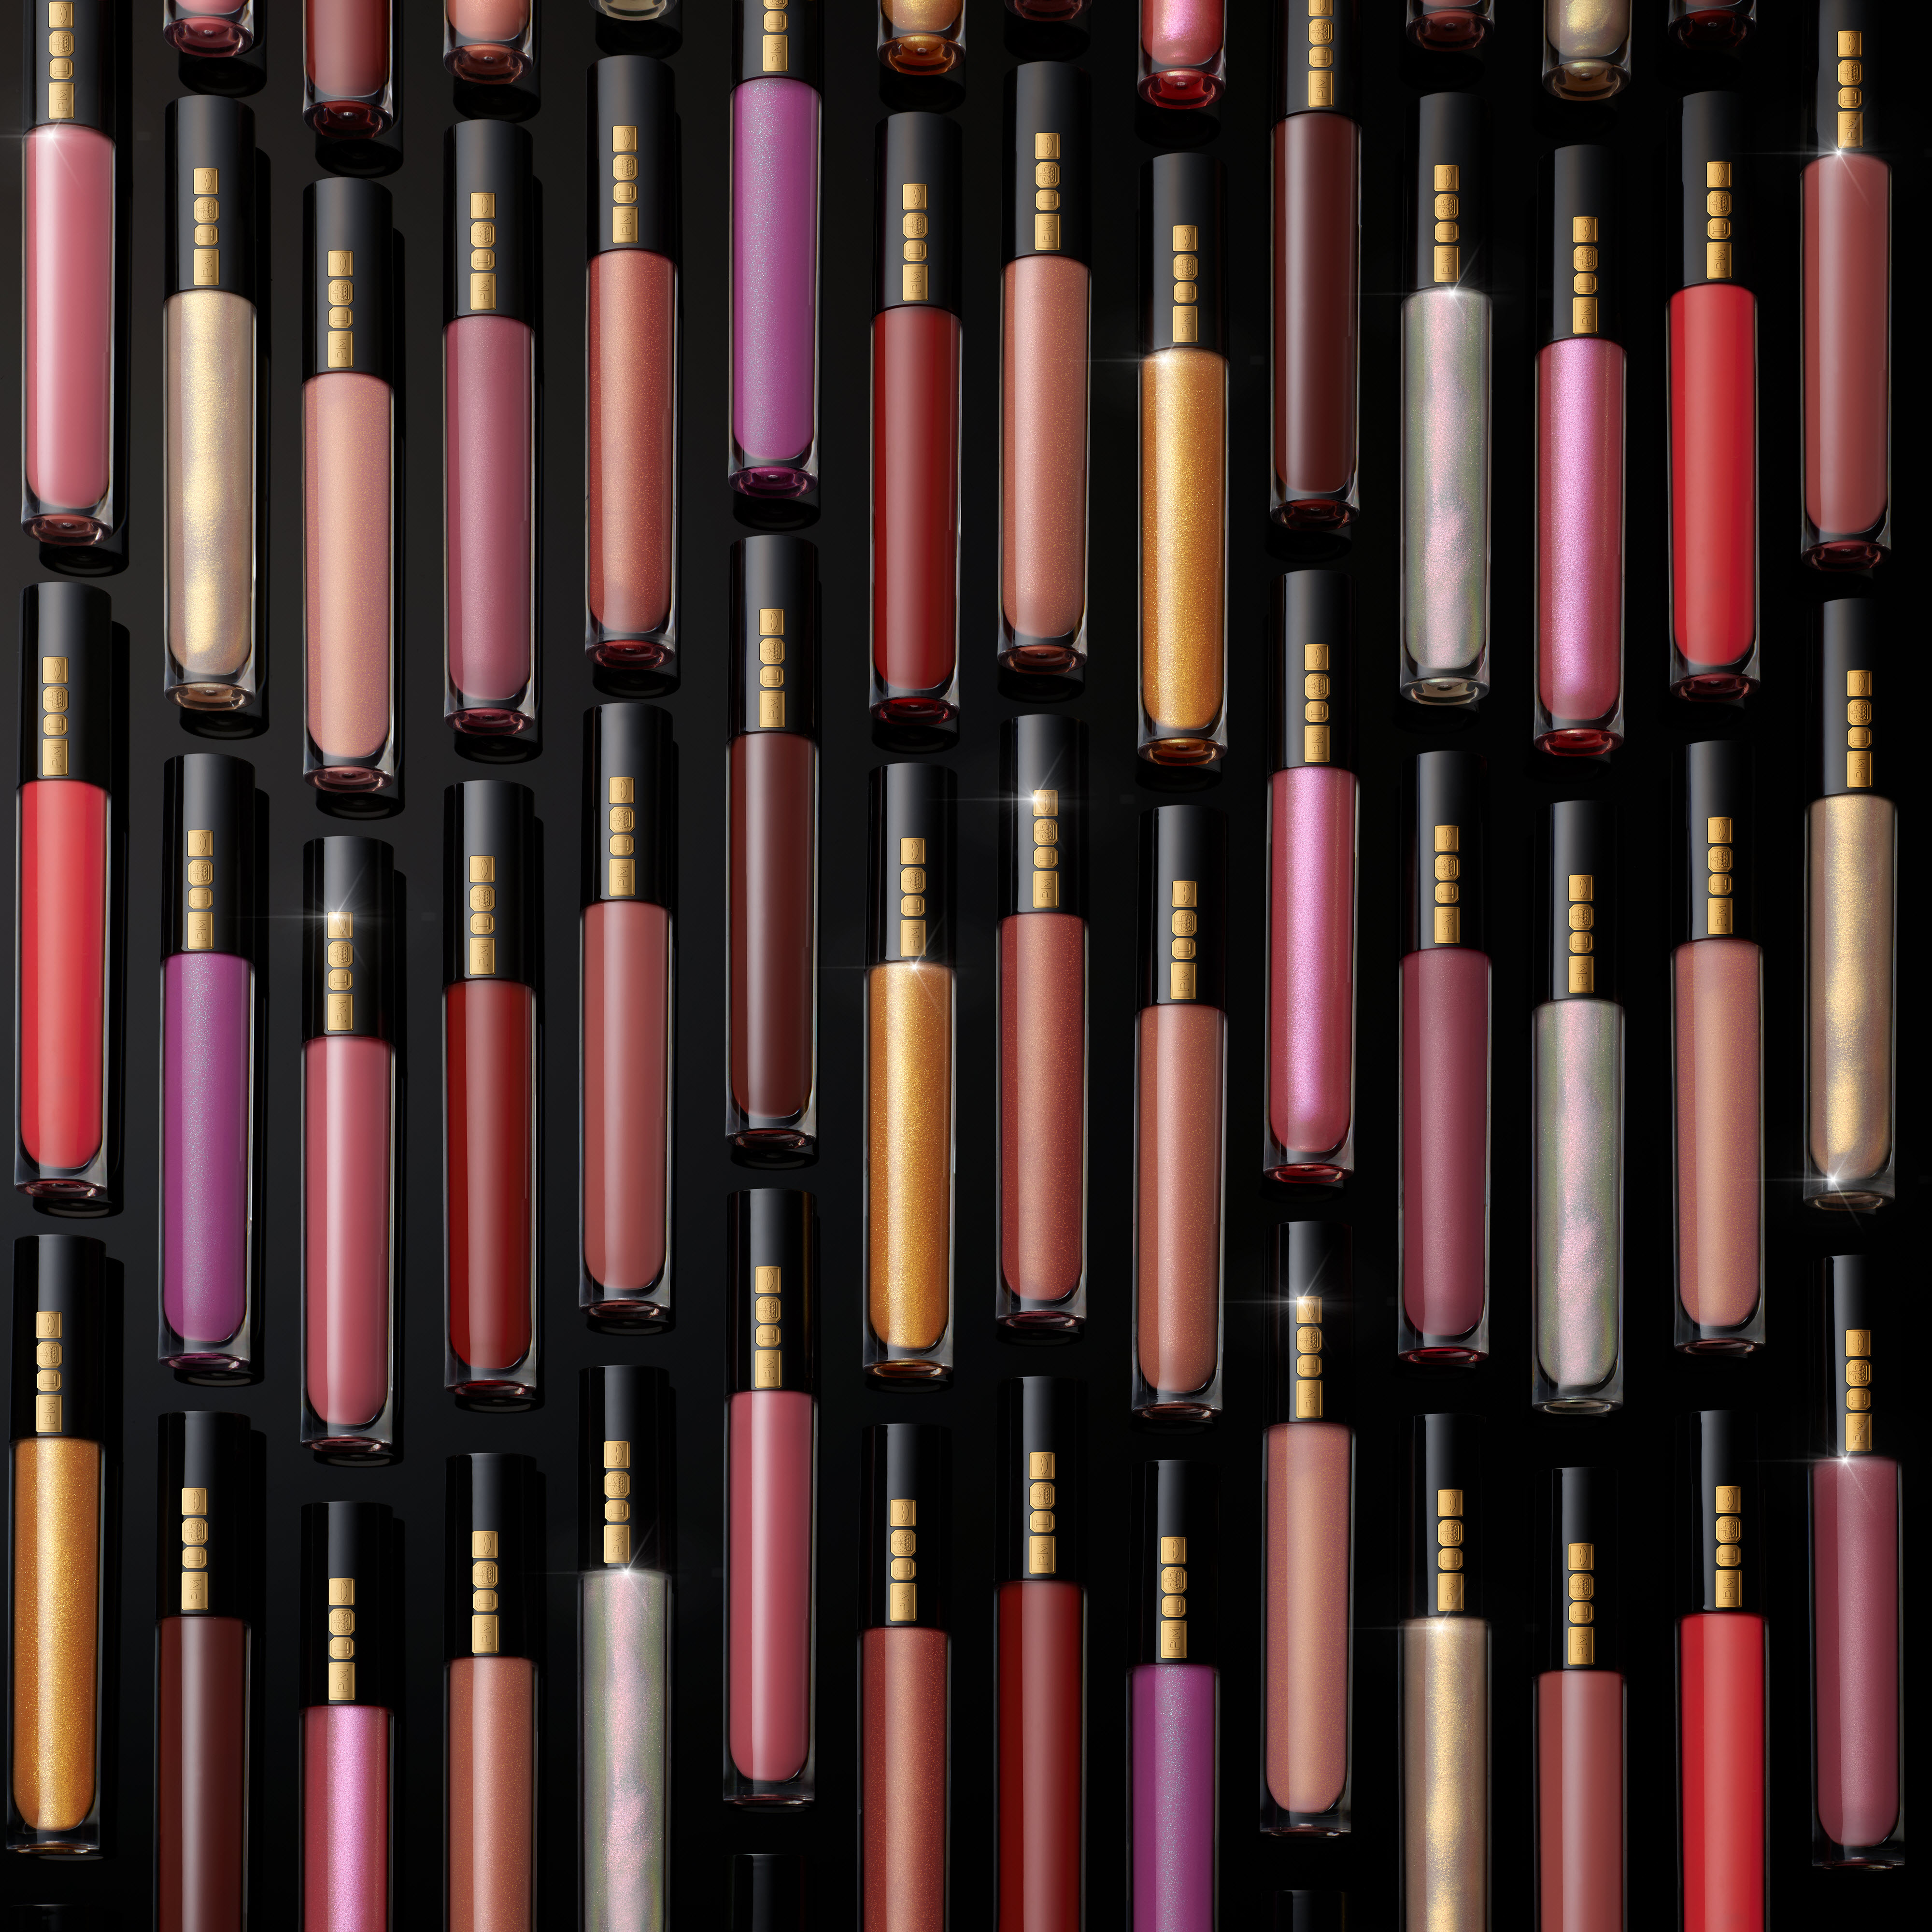 pat mcgrath, Lust lip gloss